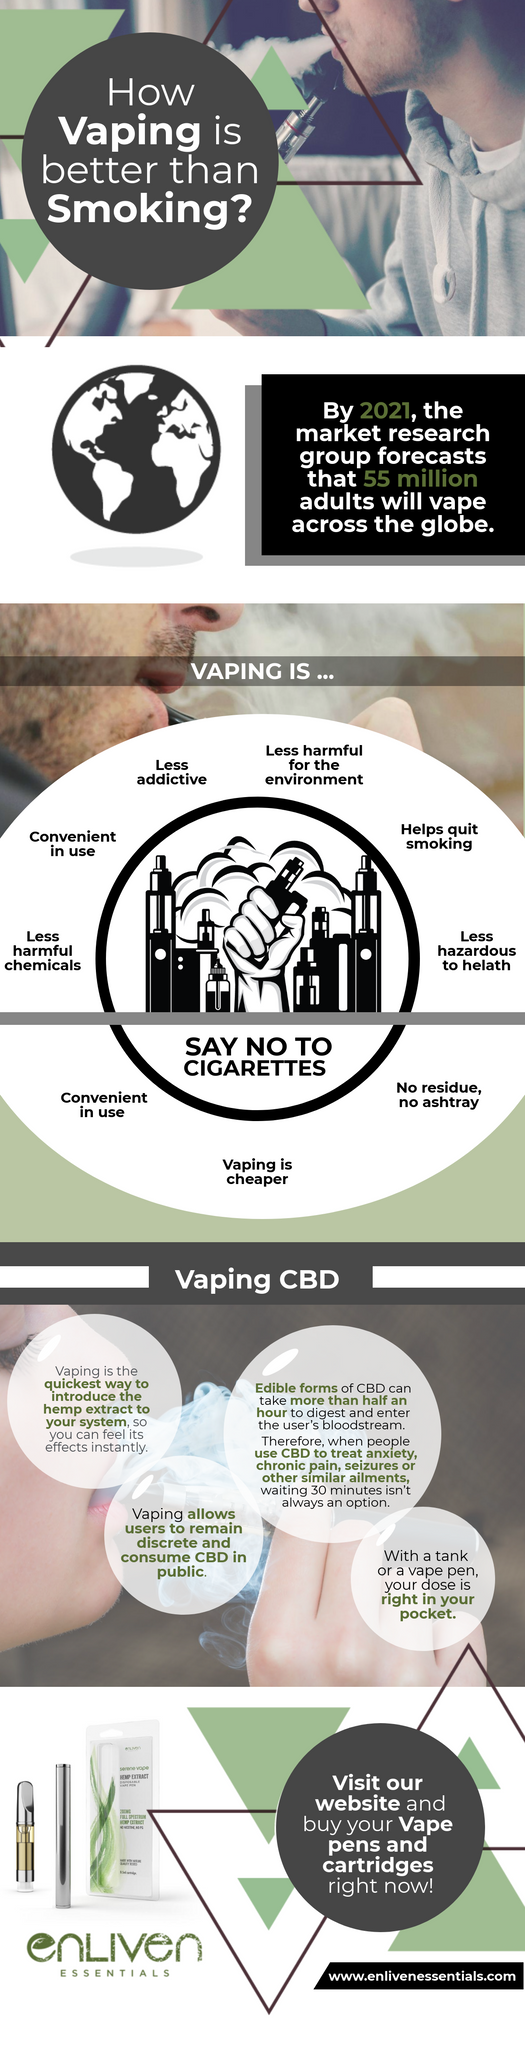 vaping is better than smoking